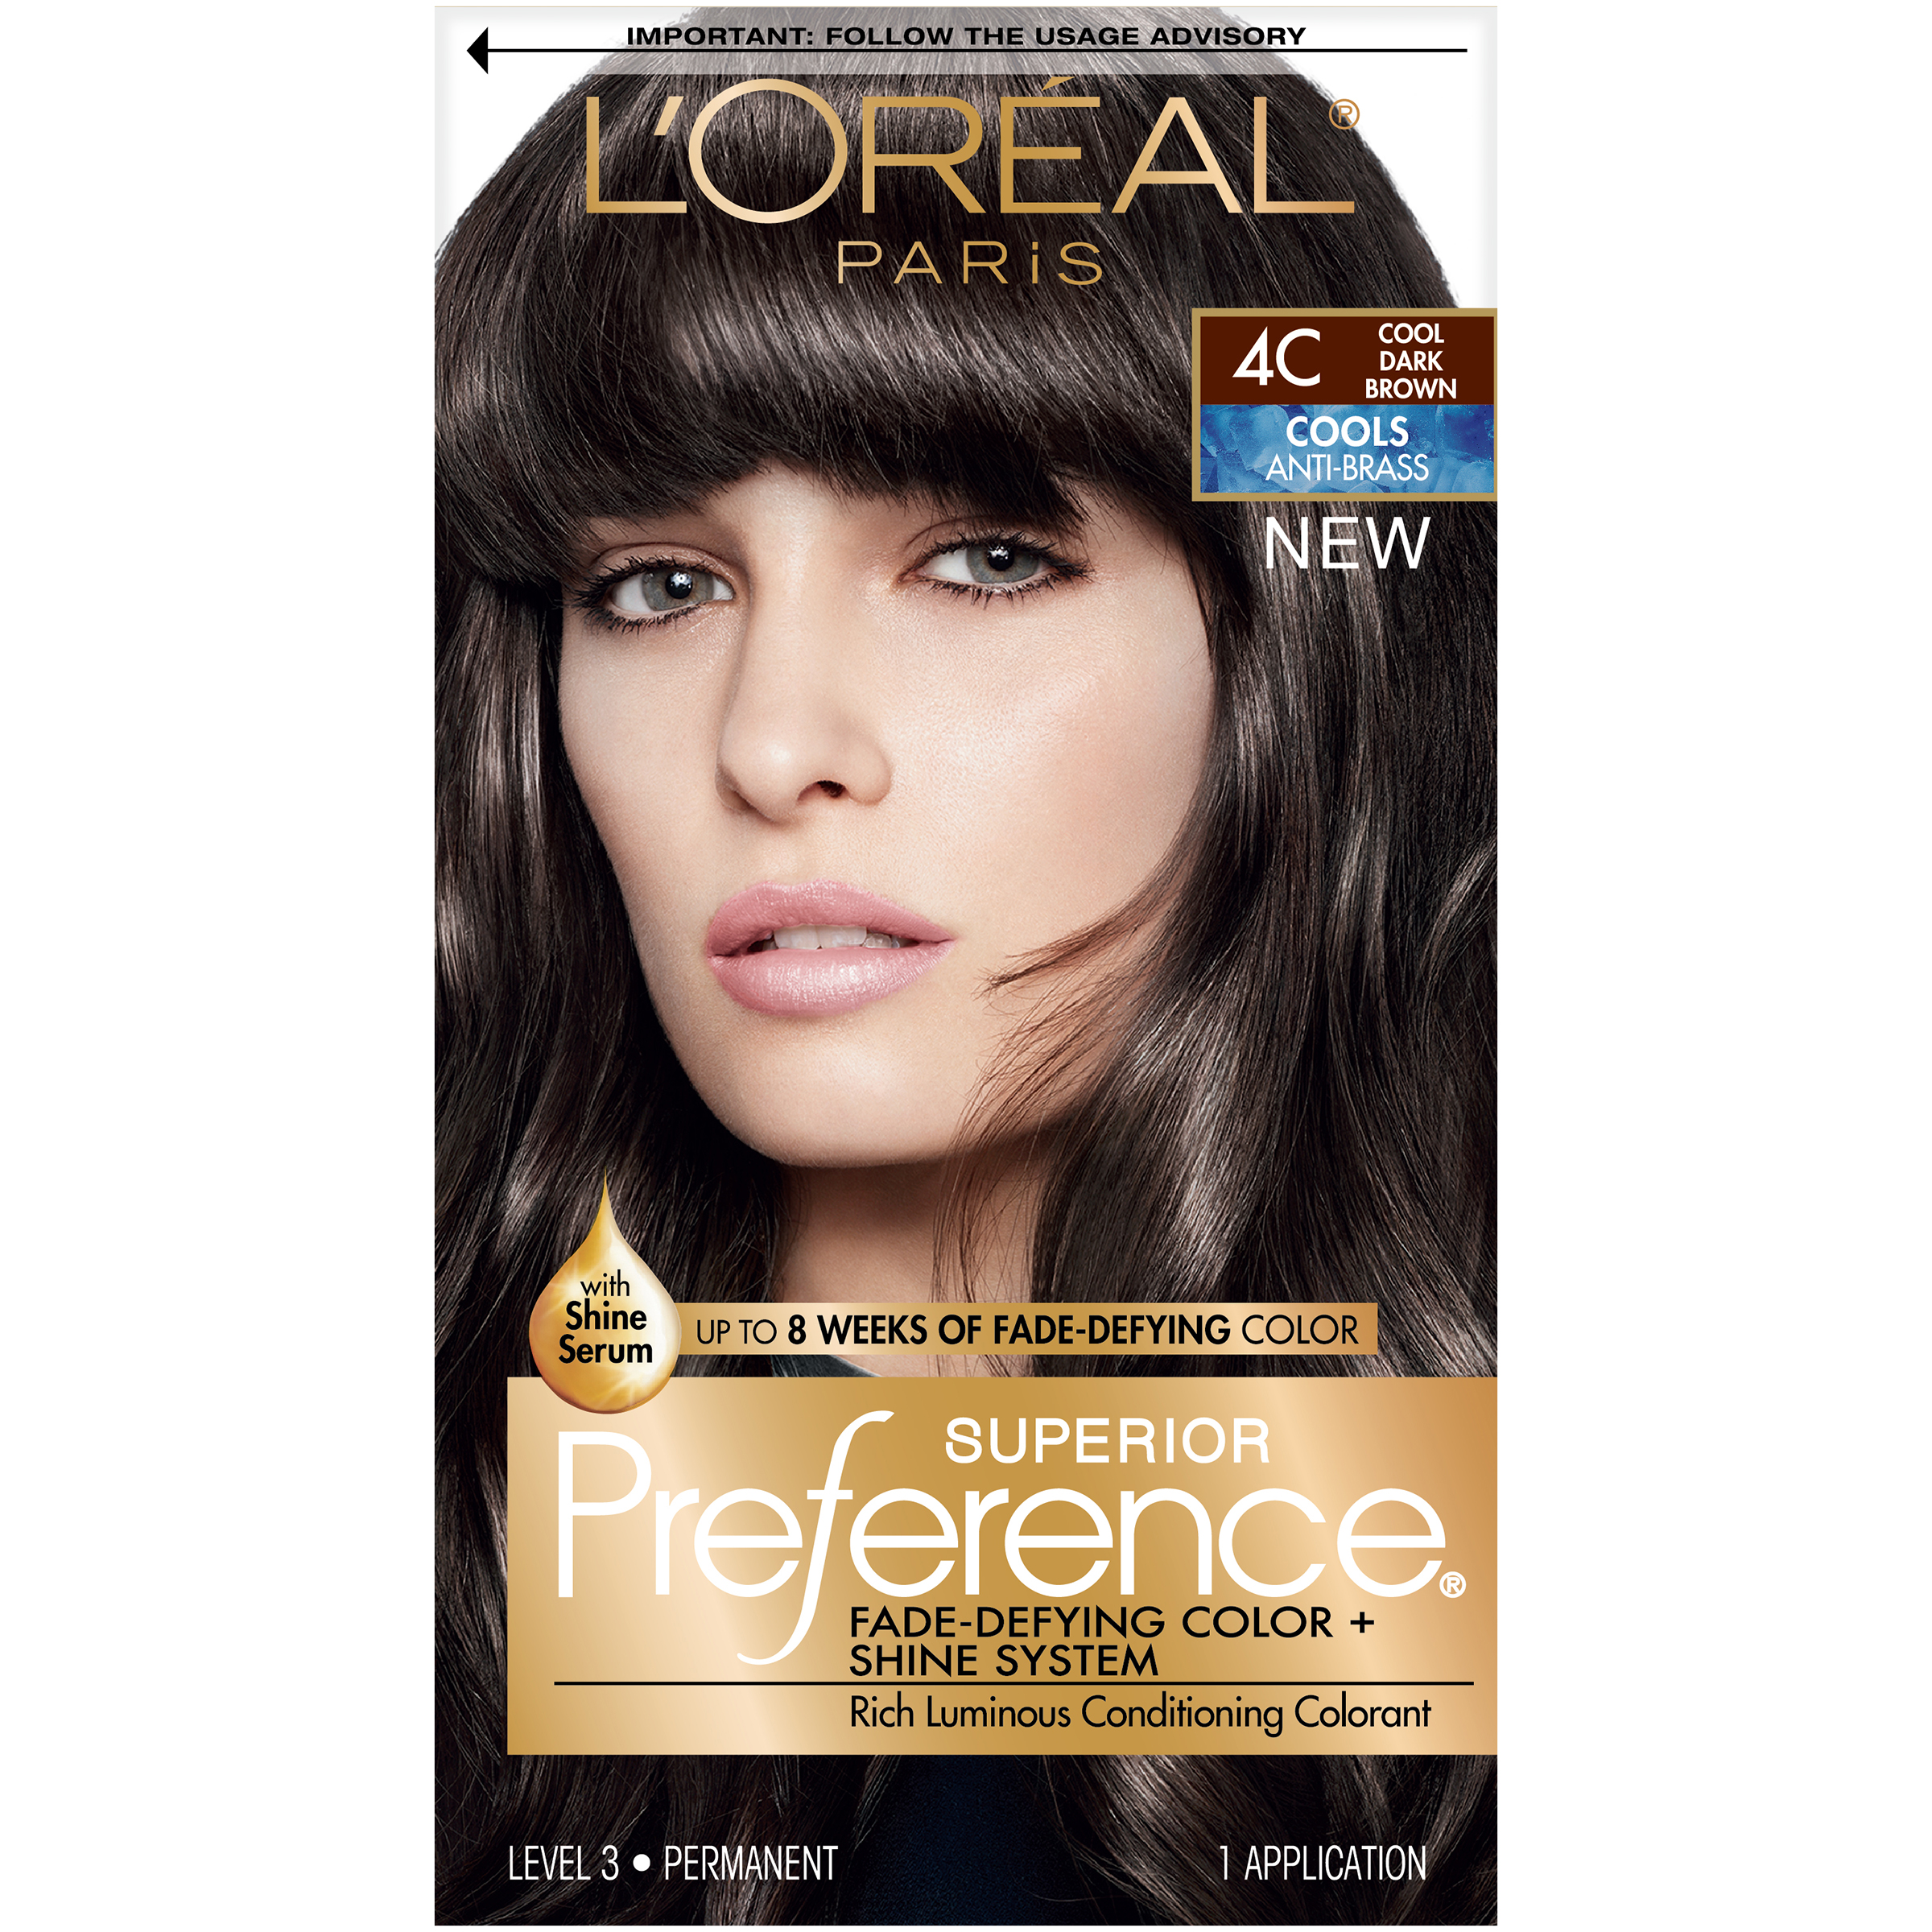 Loral Paris Superior Preference Permanent Hair Color 4c Cool Dark